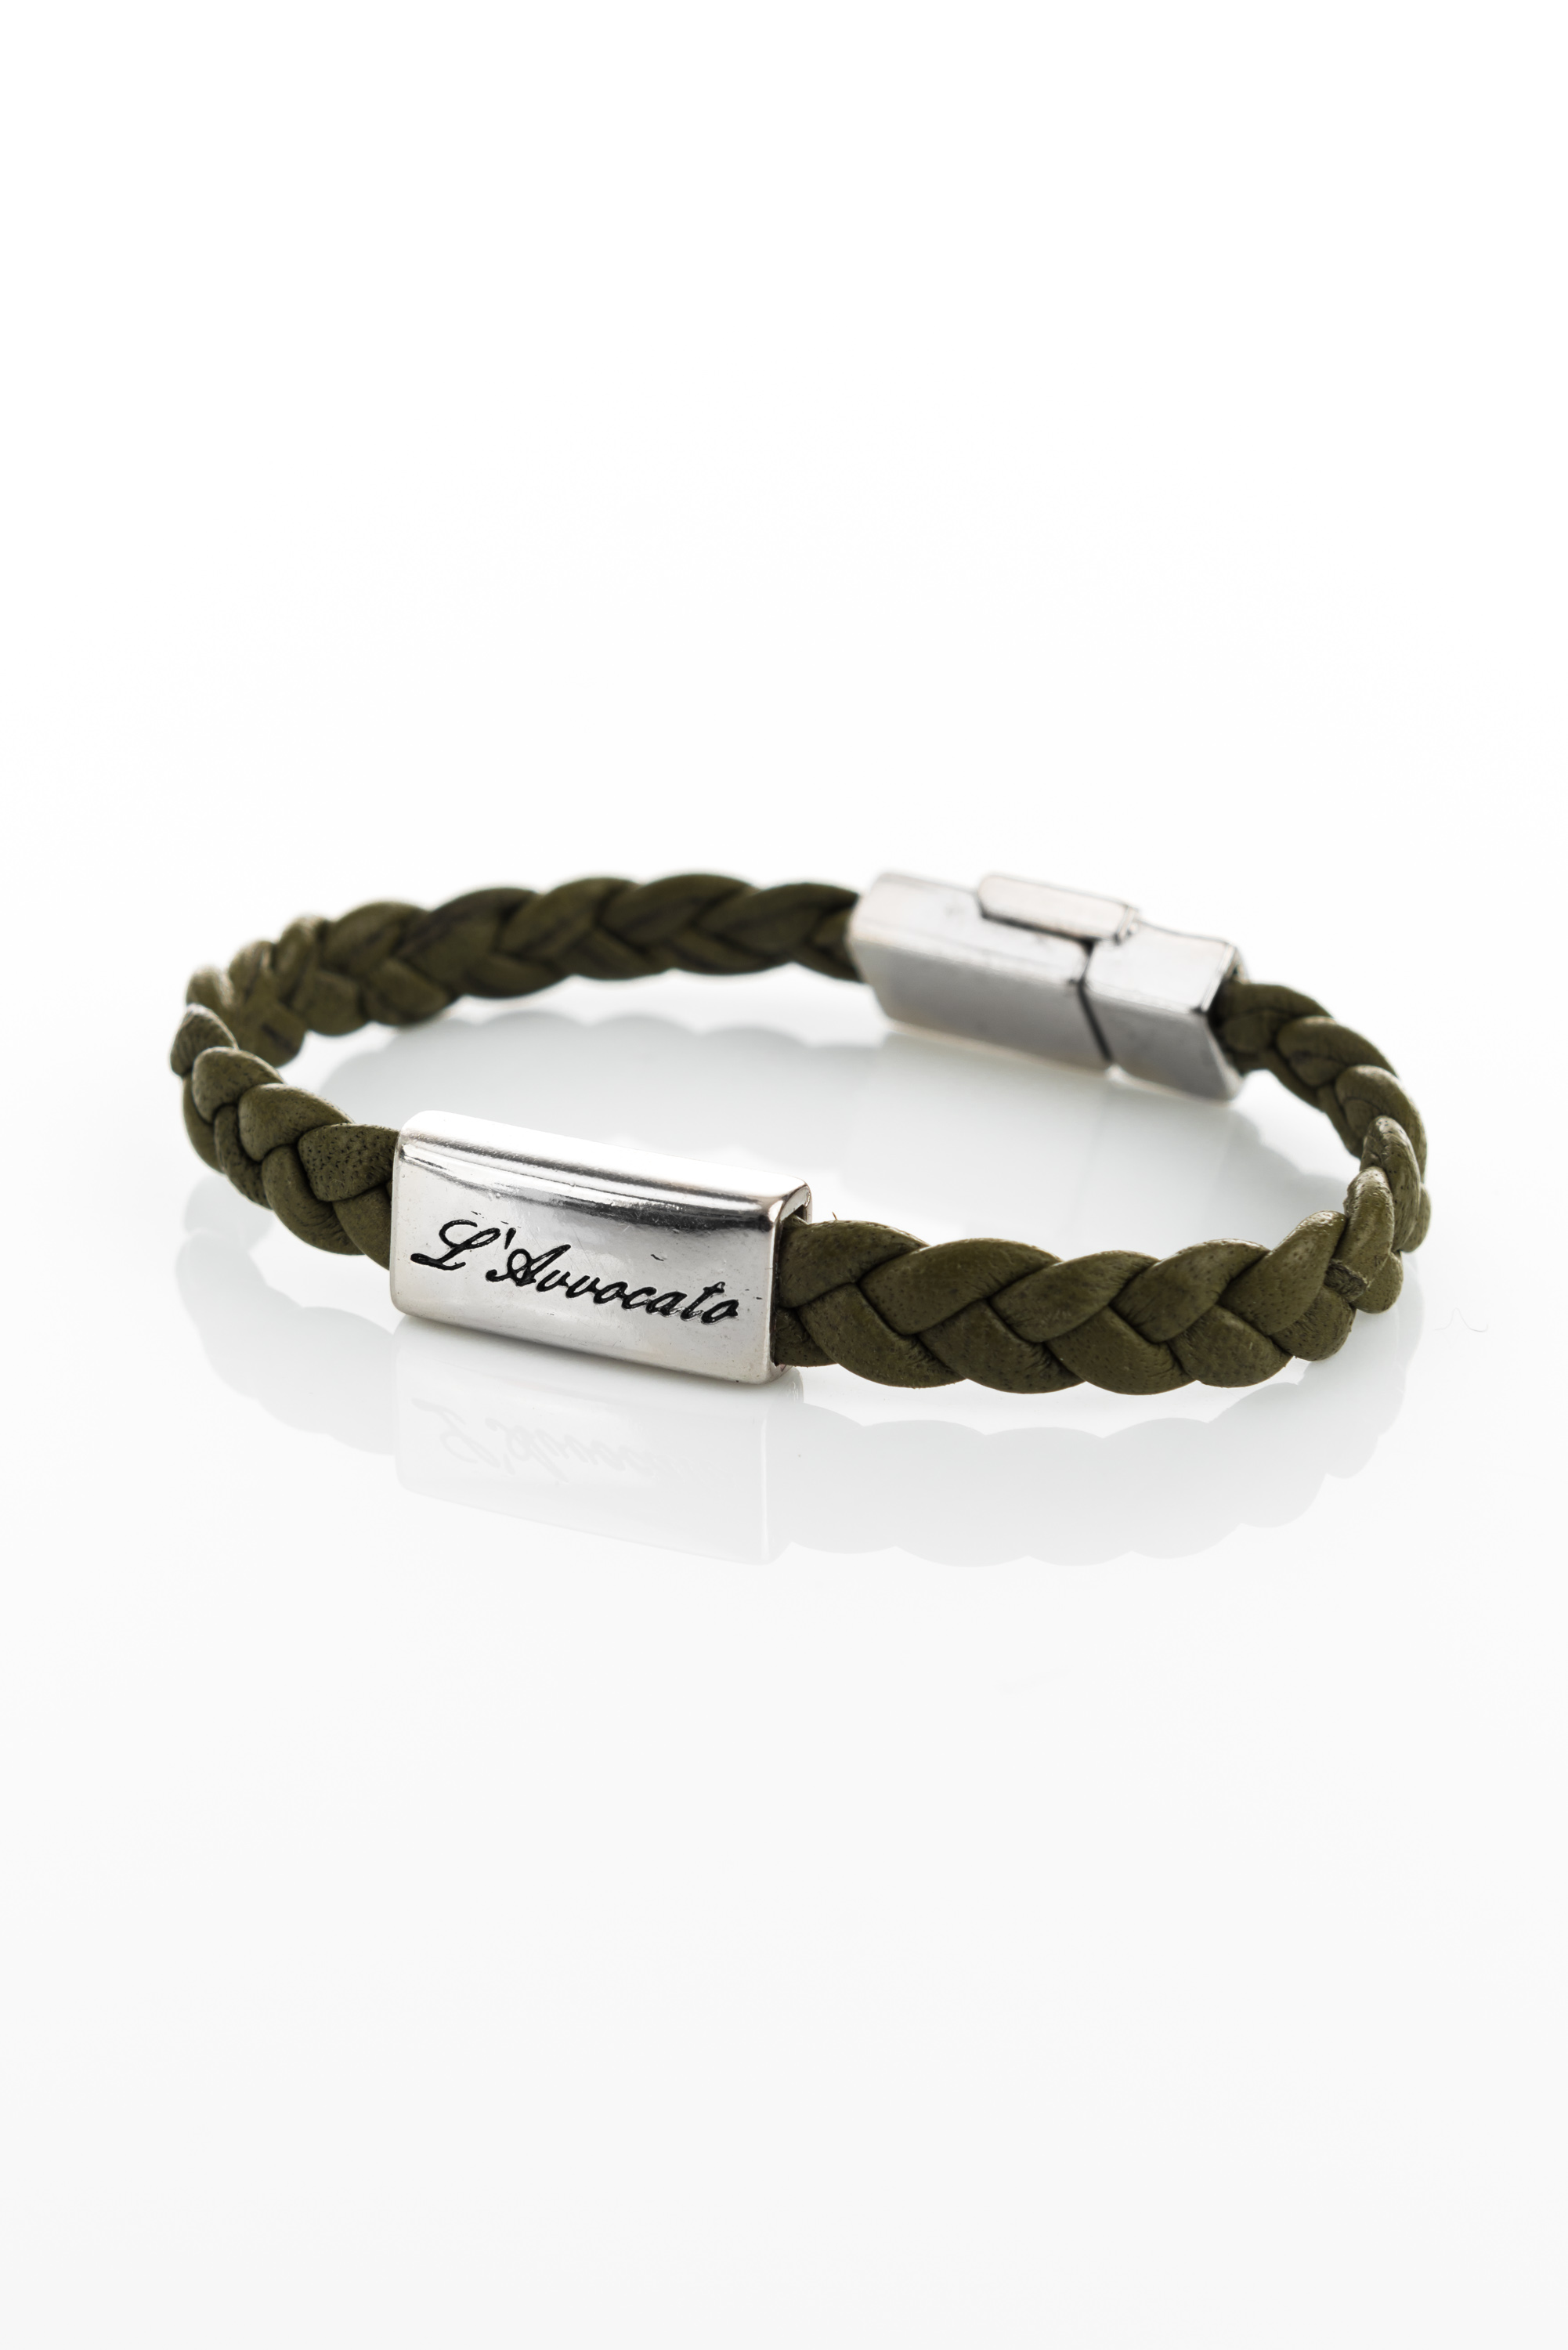 "Vowen leather bracelet ""Eddy"" green- L'Avvocato"